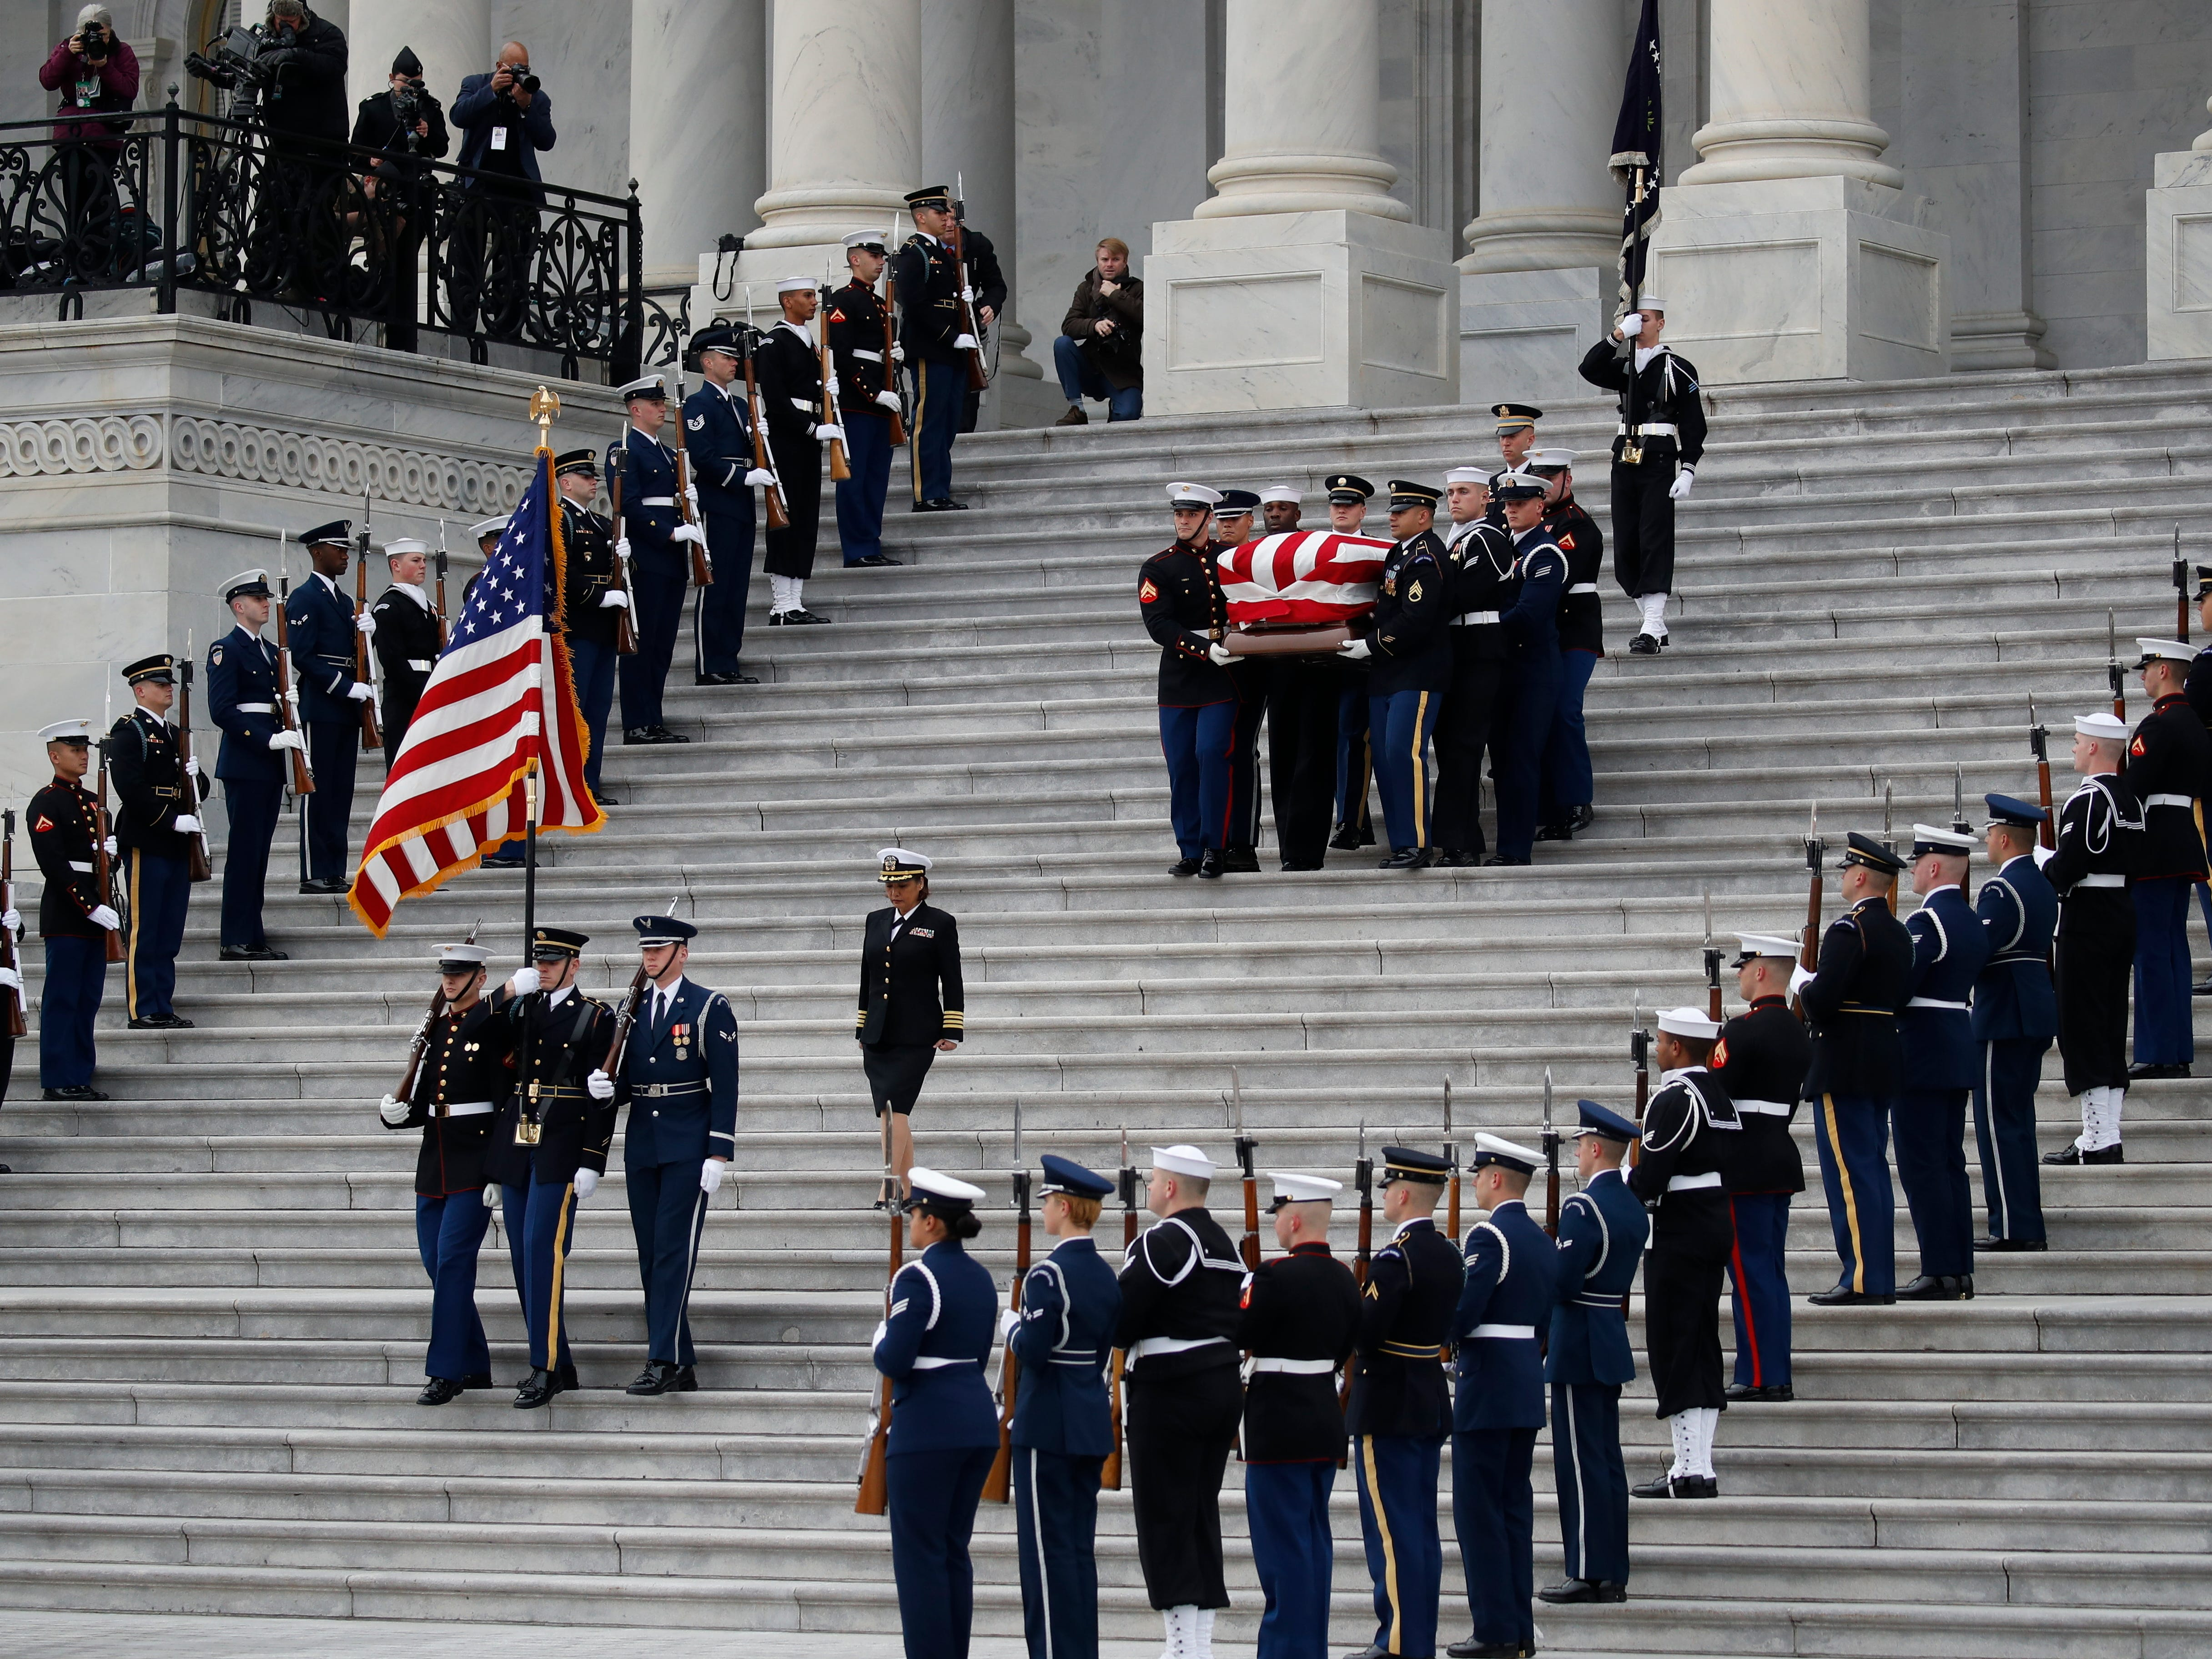 The flag-draped casket of former President George H.W. Bush is carried by a joint services military honor guard from the U.S. Capitol, Wednesday, Dec. 5, 2018, in Washington.